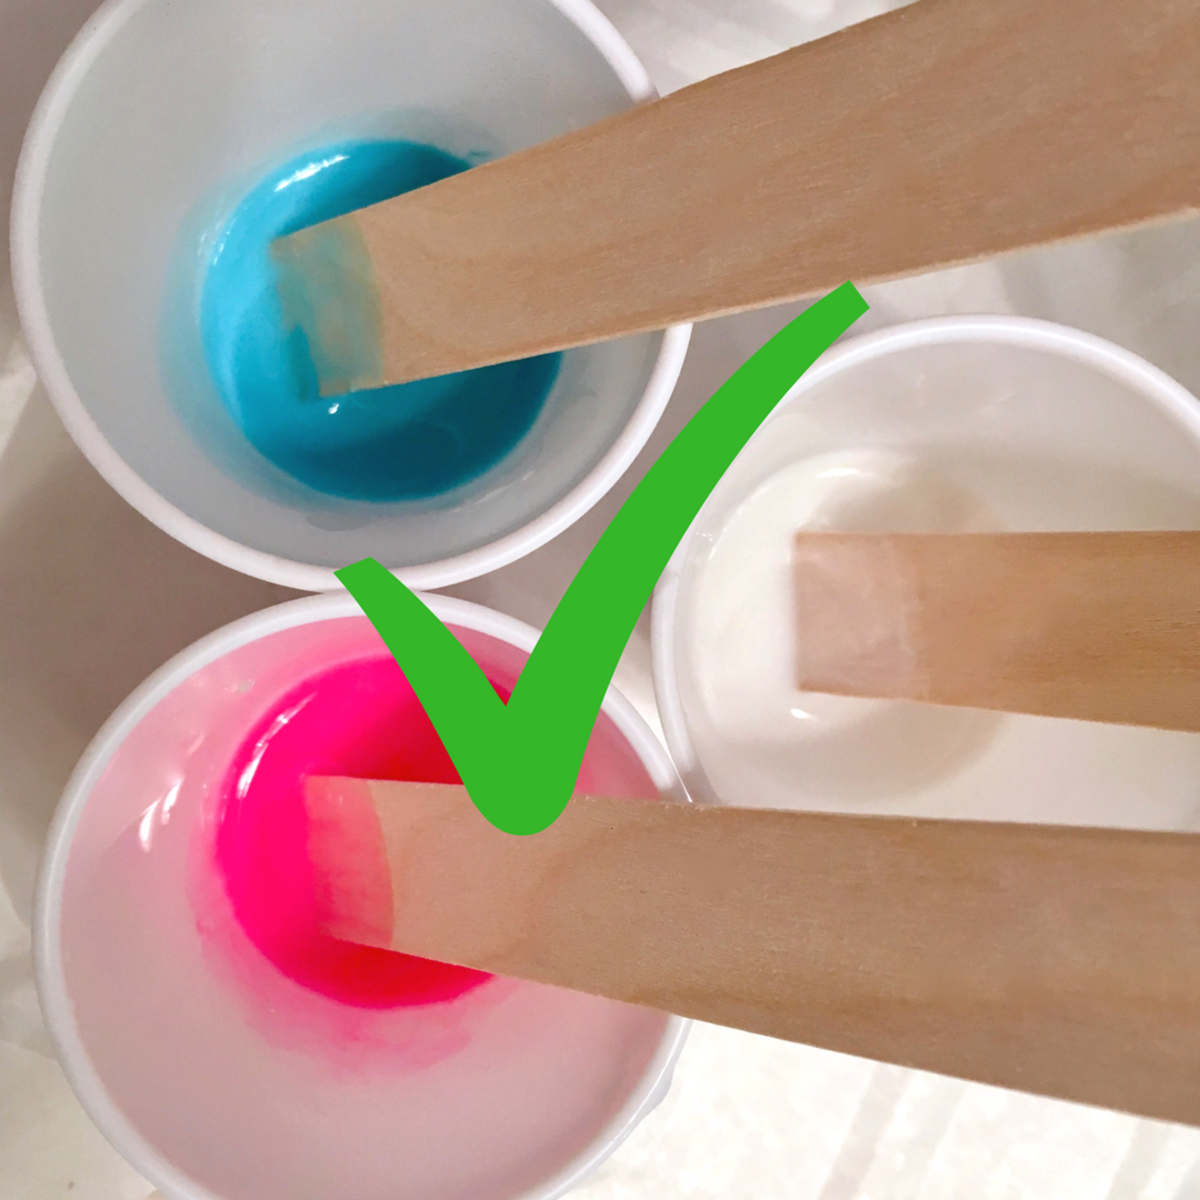 Slowly stirring your paints and pouring medium with a wood craft stick will blend the colors without adding air bubbles.